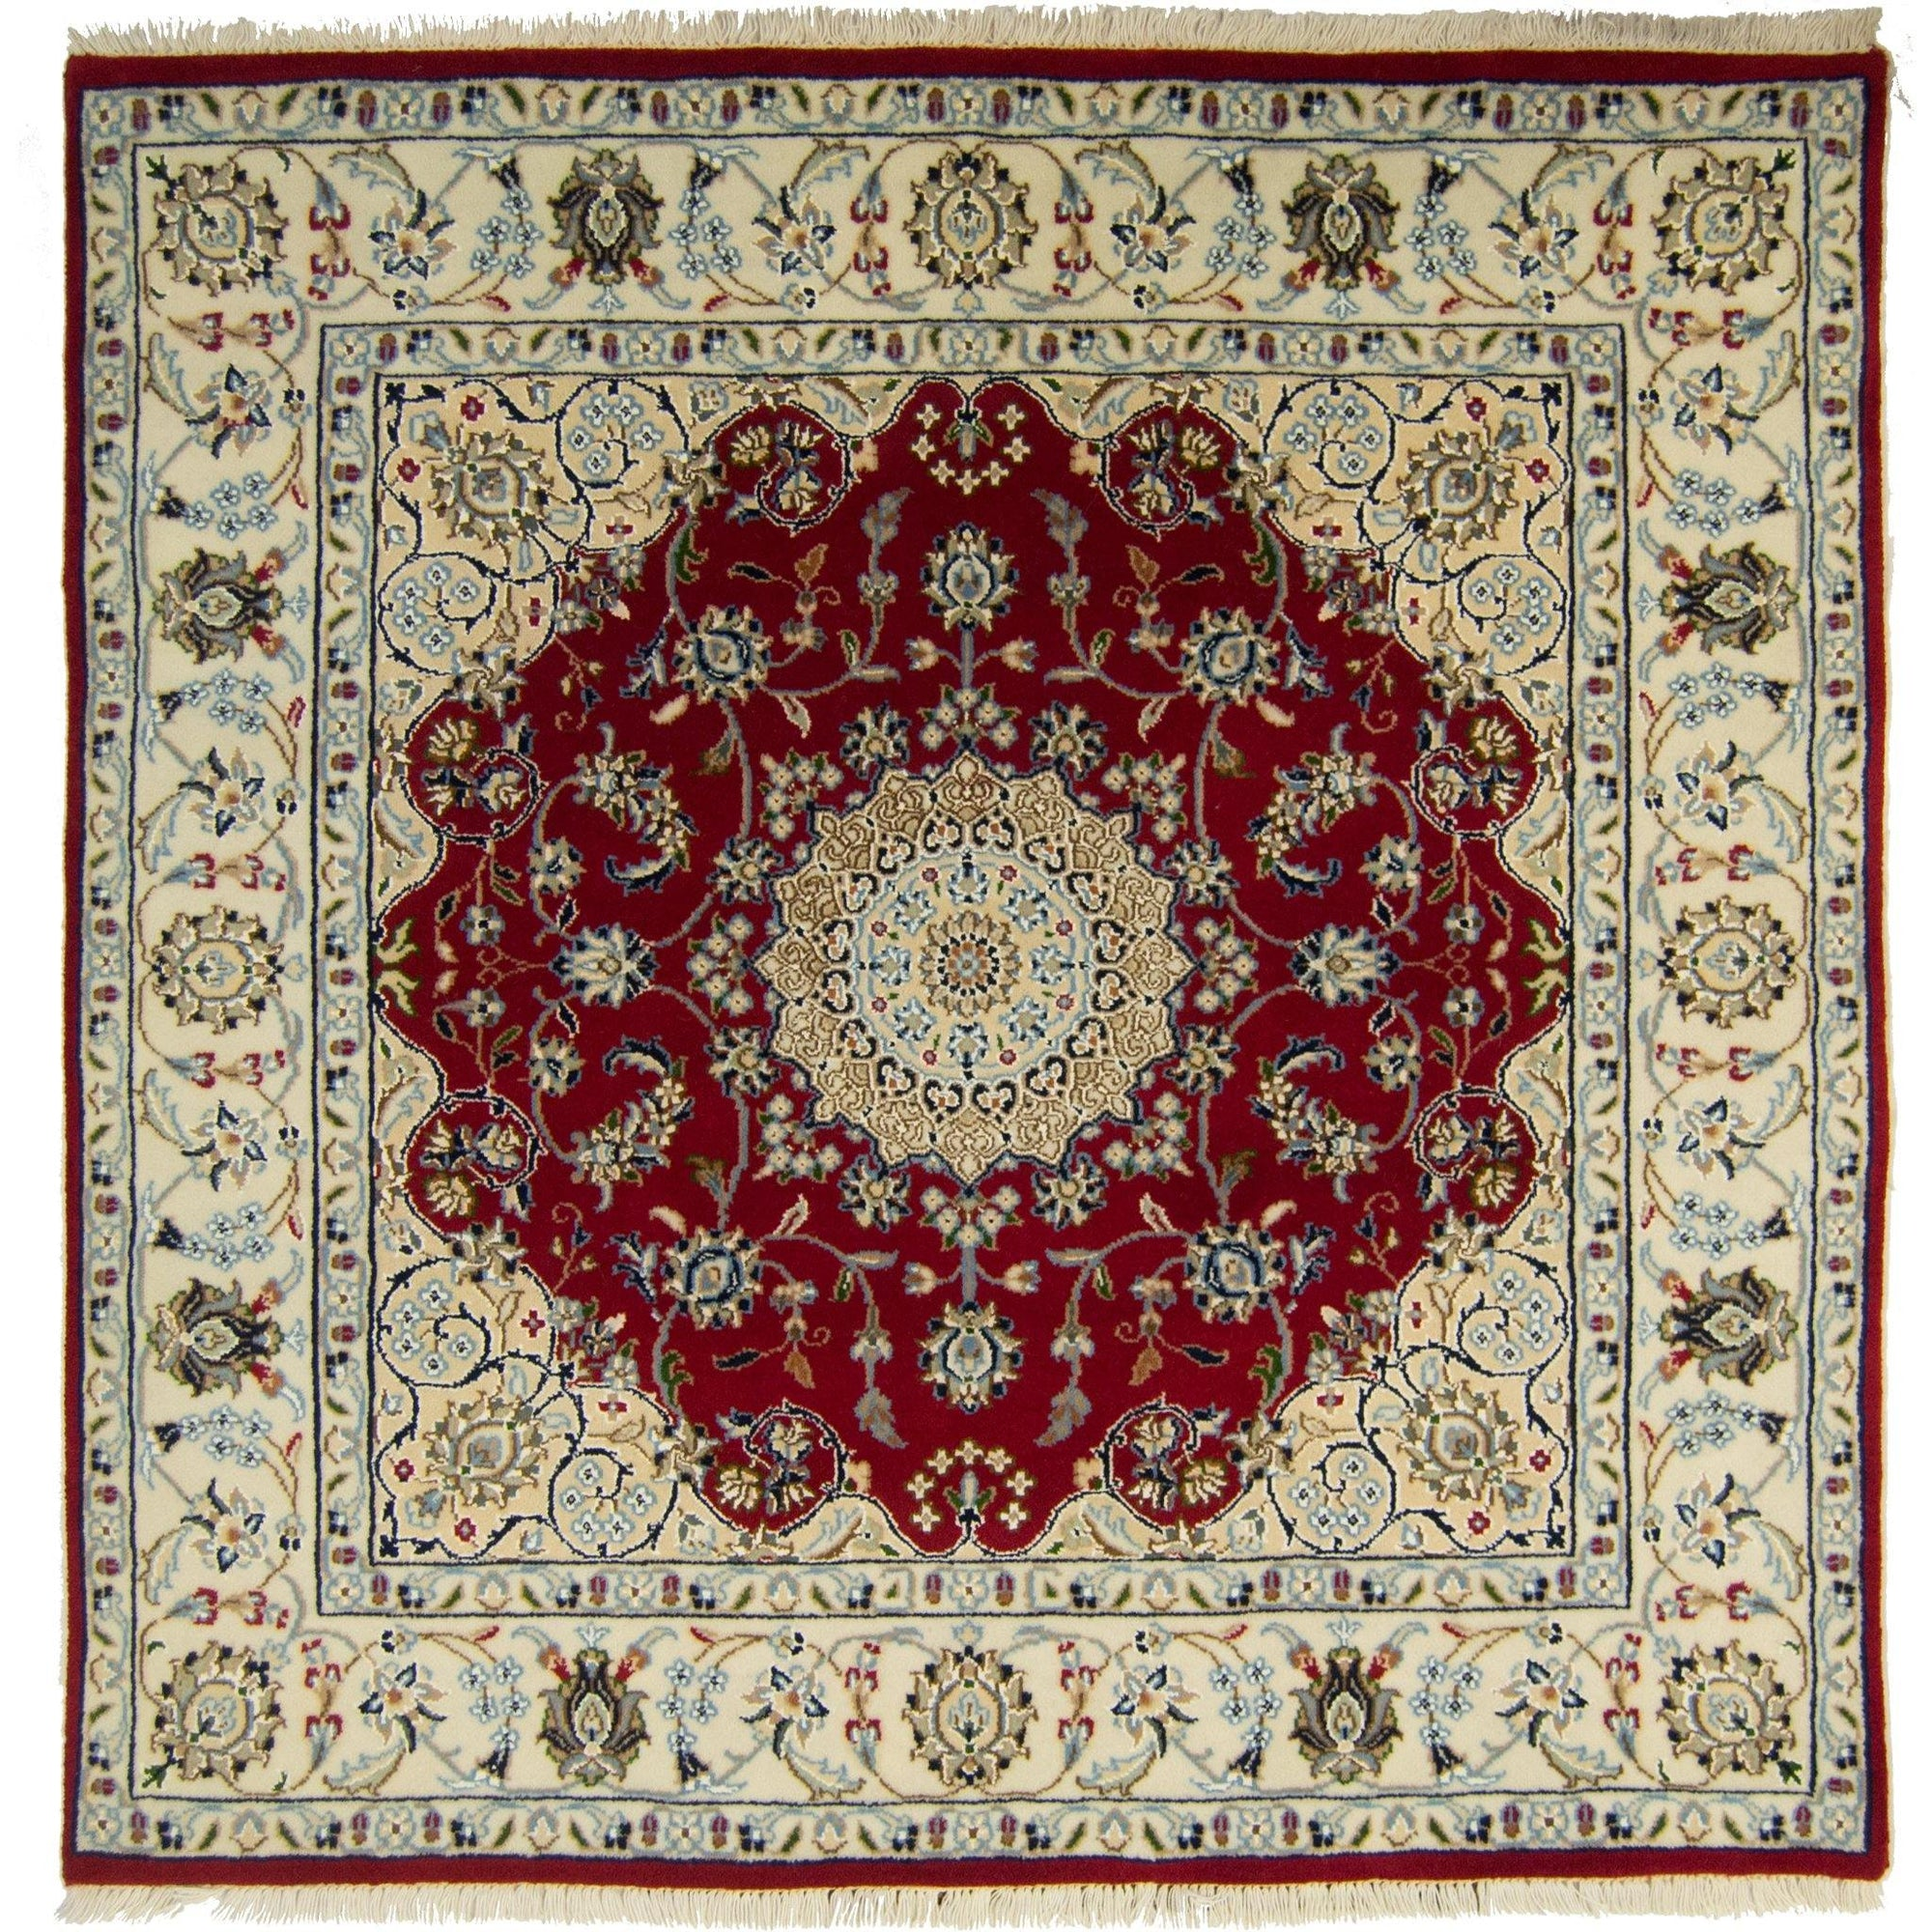 Fine Hand-knotted Wool and Silk Persian Nain Square Rug 125cm x 128cm Persian-Rug | House-of-Haghi | NewMarket | Auckland | NZ | Handmade Persian Rugs | Hand Knotted Persian Rugs